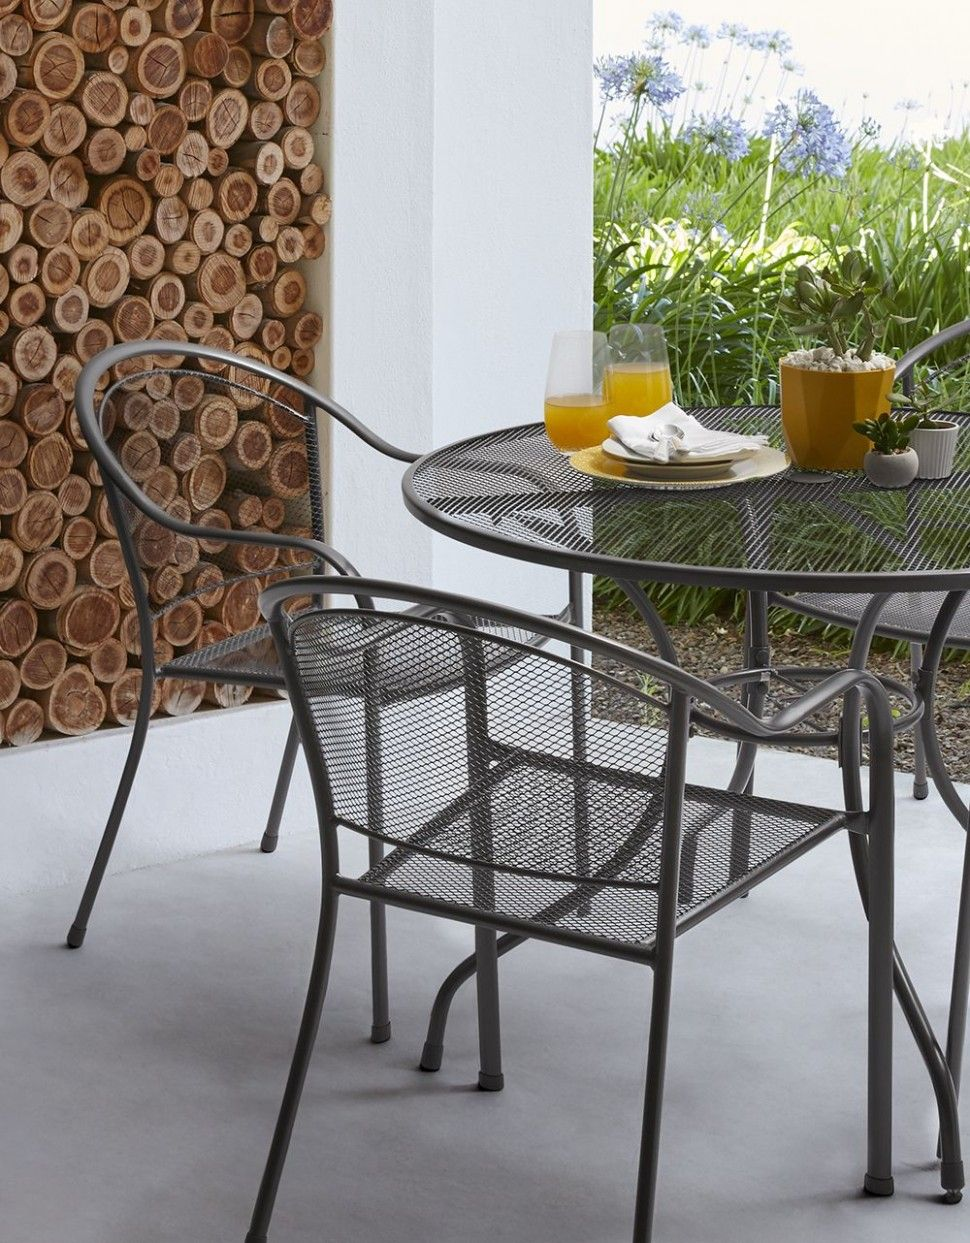 Garden Chairs At Homebase in 9  Garden chairs, Outdoor living